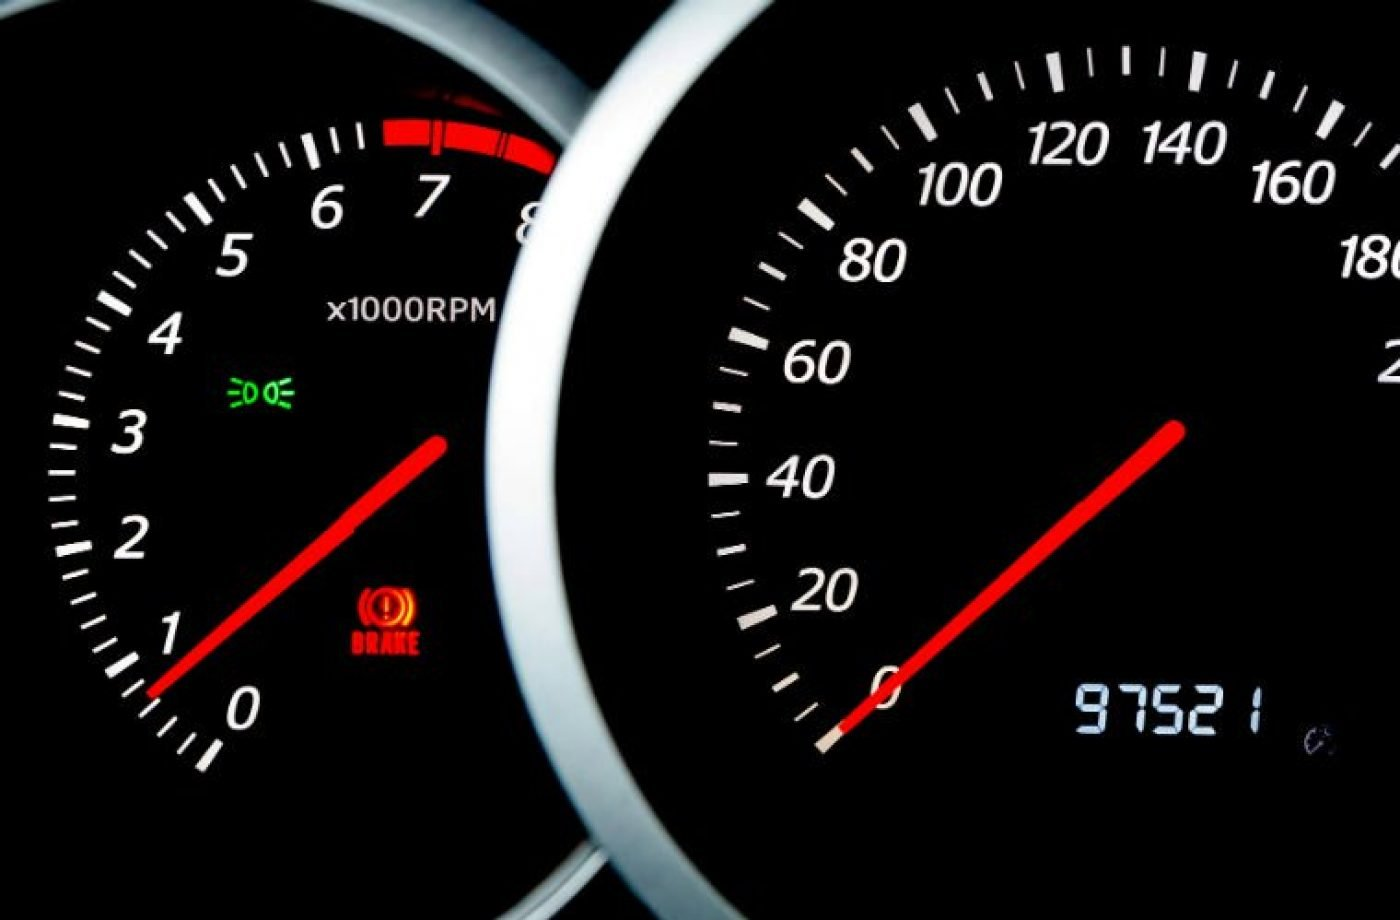 Local government association calls for ban on mileage correction services and devices